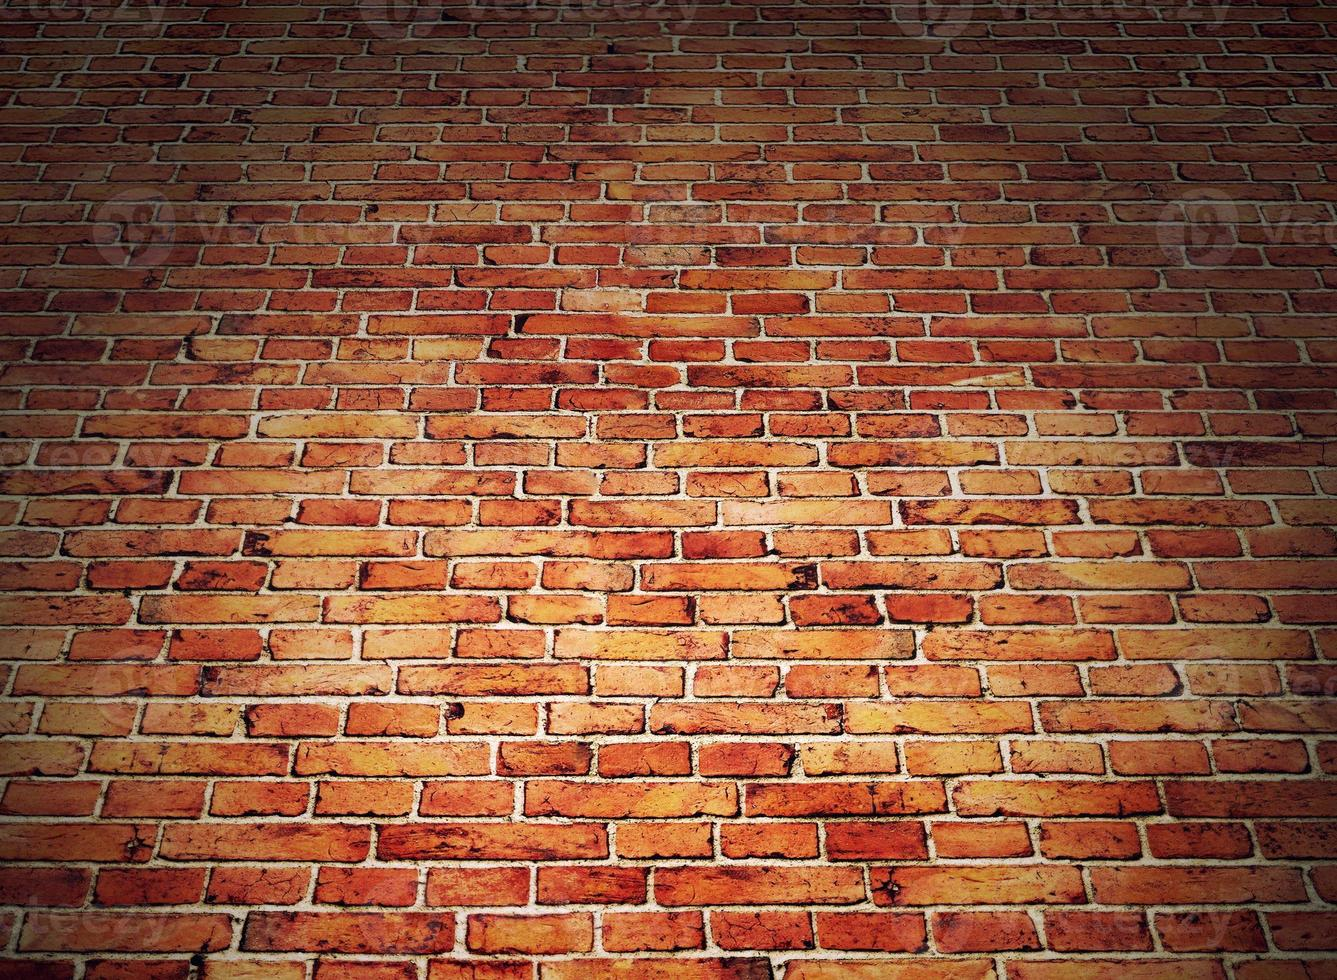 angle view of red brick wall photo